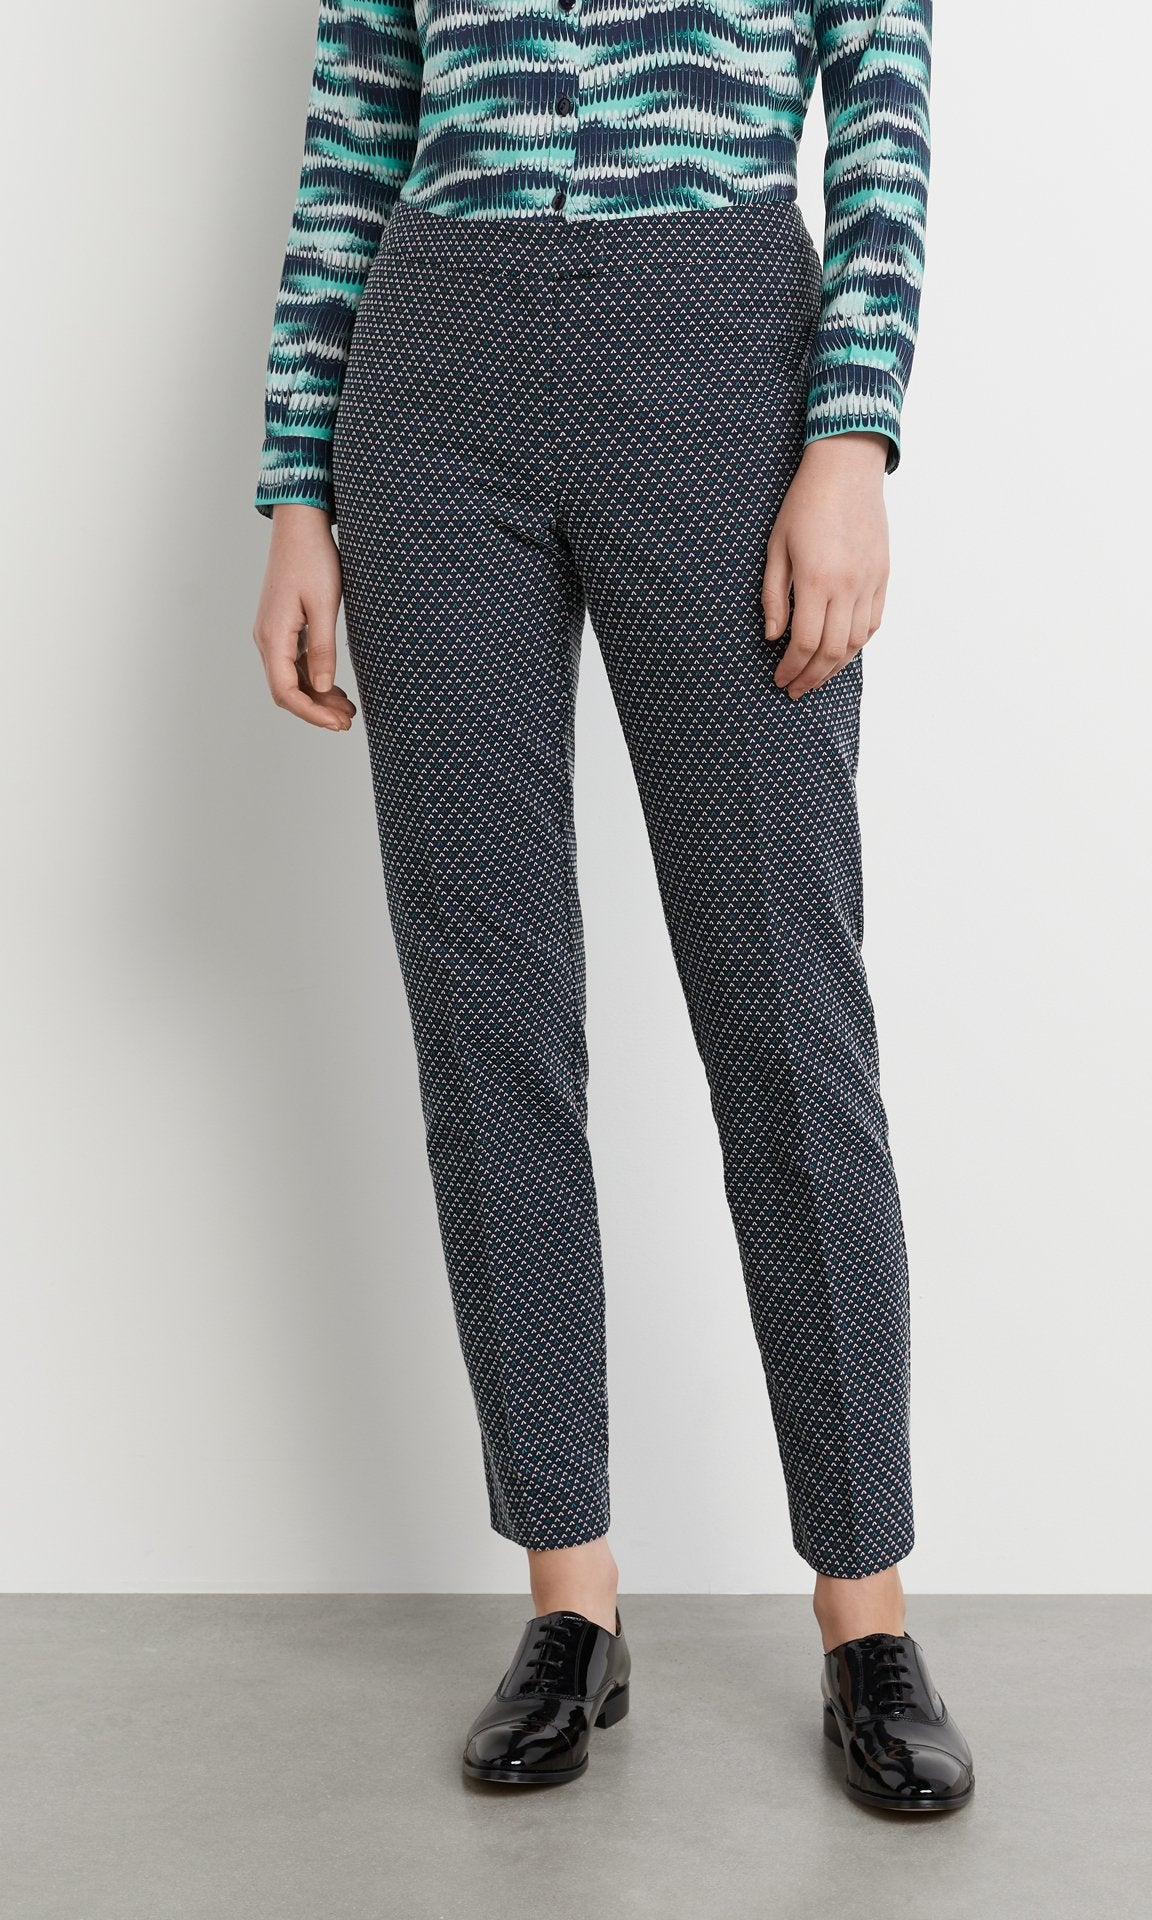 Sinclair Trouser Navy/Teal